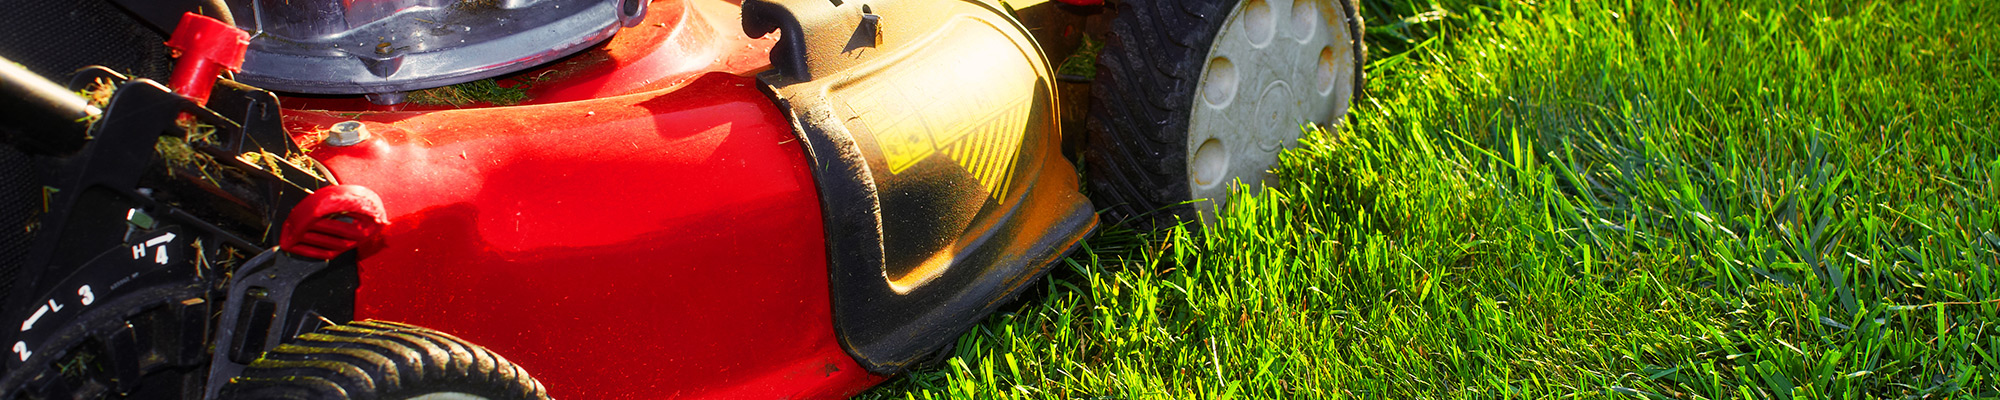 Red push lawn mower on green grass with the sun shining on it